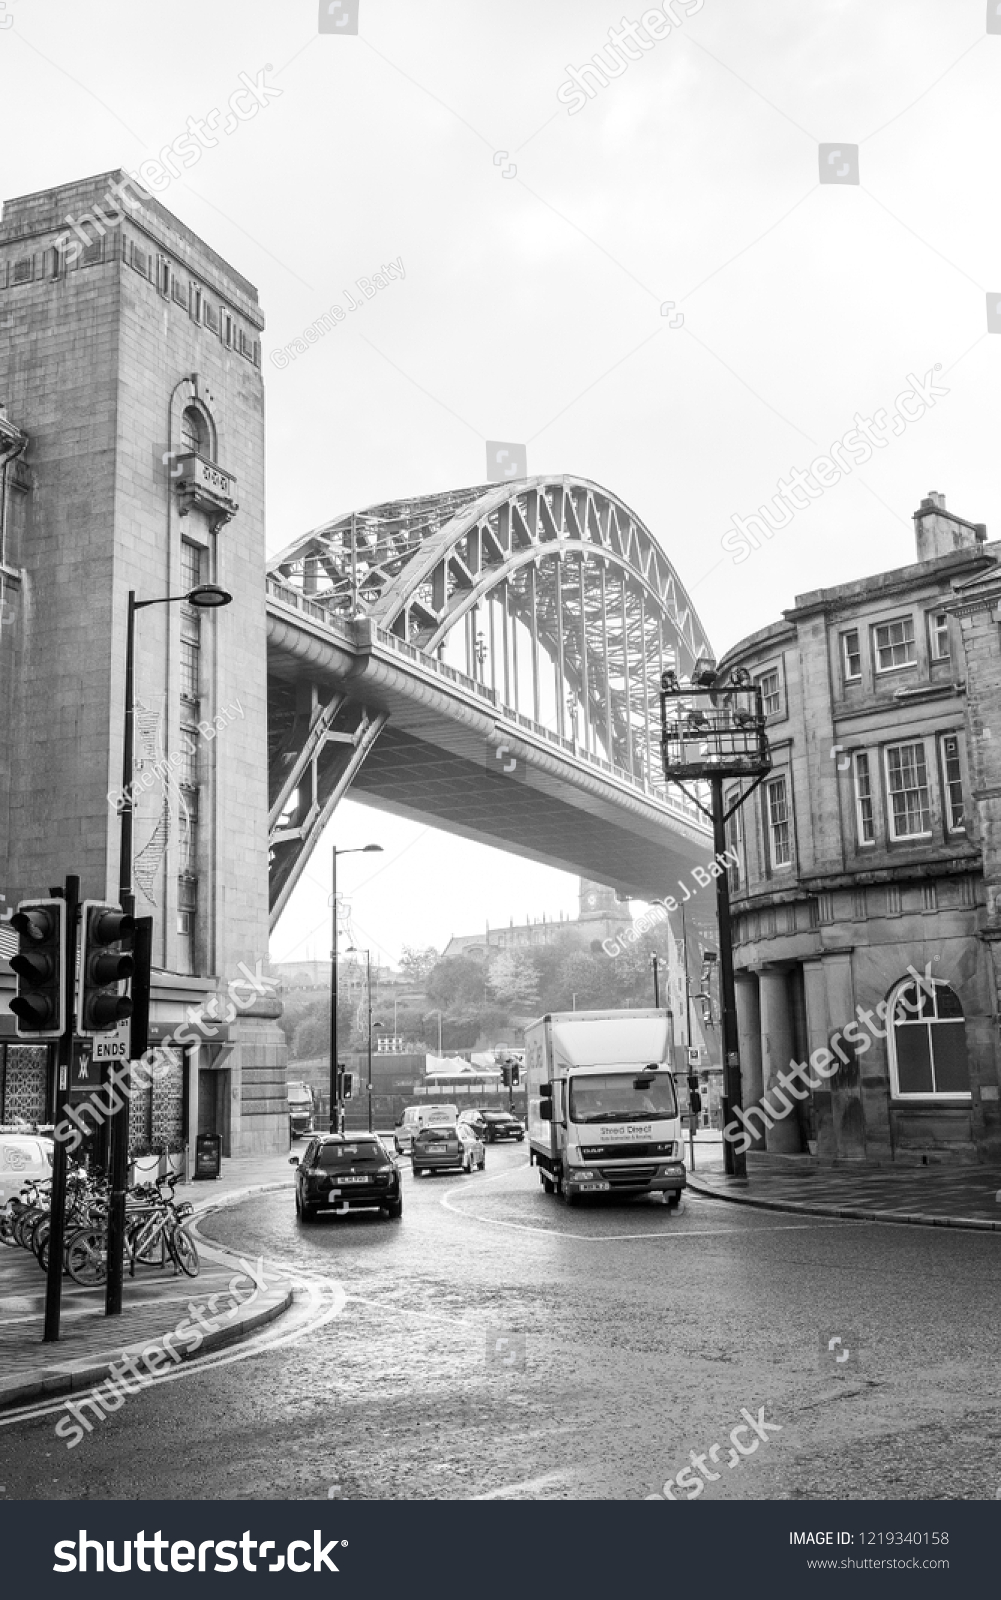 Newcastle upon tyne england 10 10 2018 tyne bridge on a